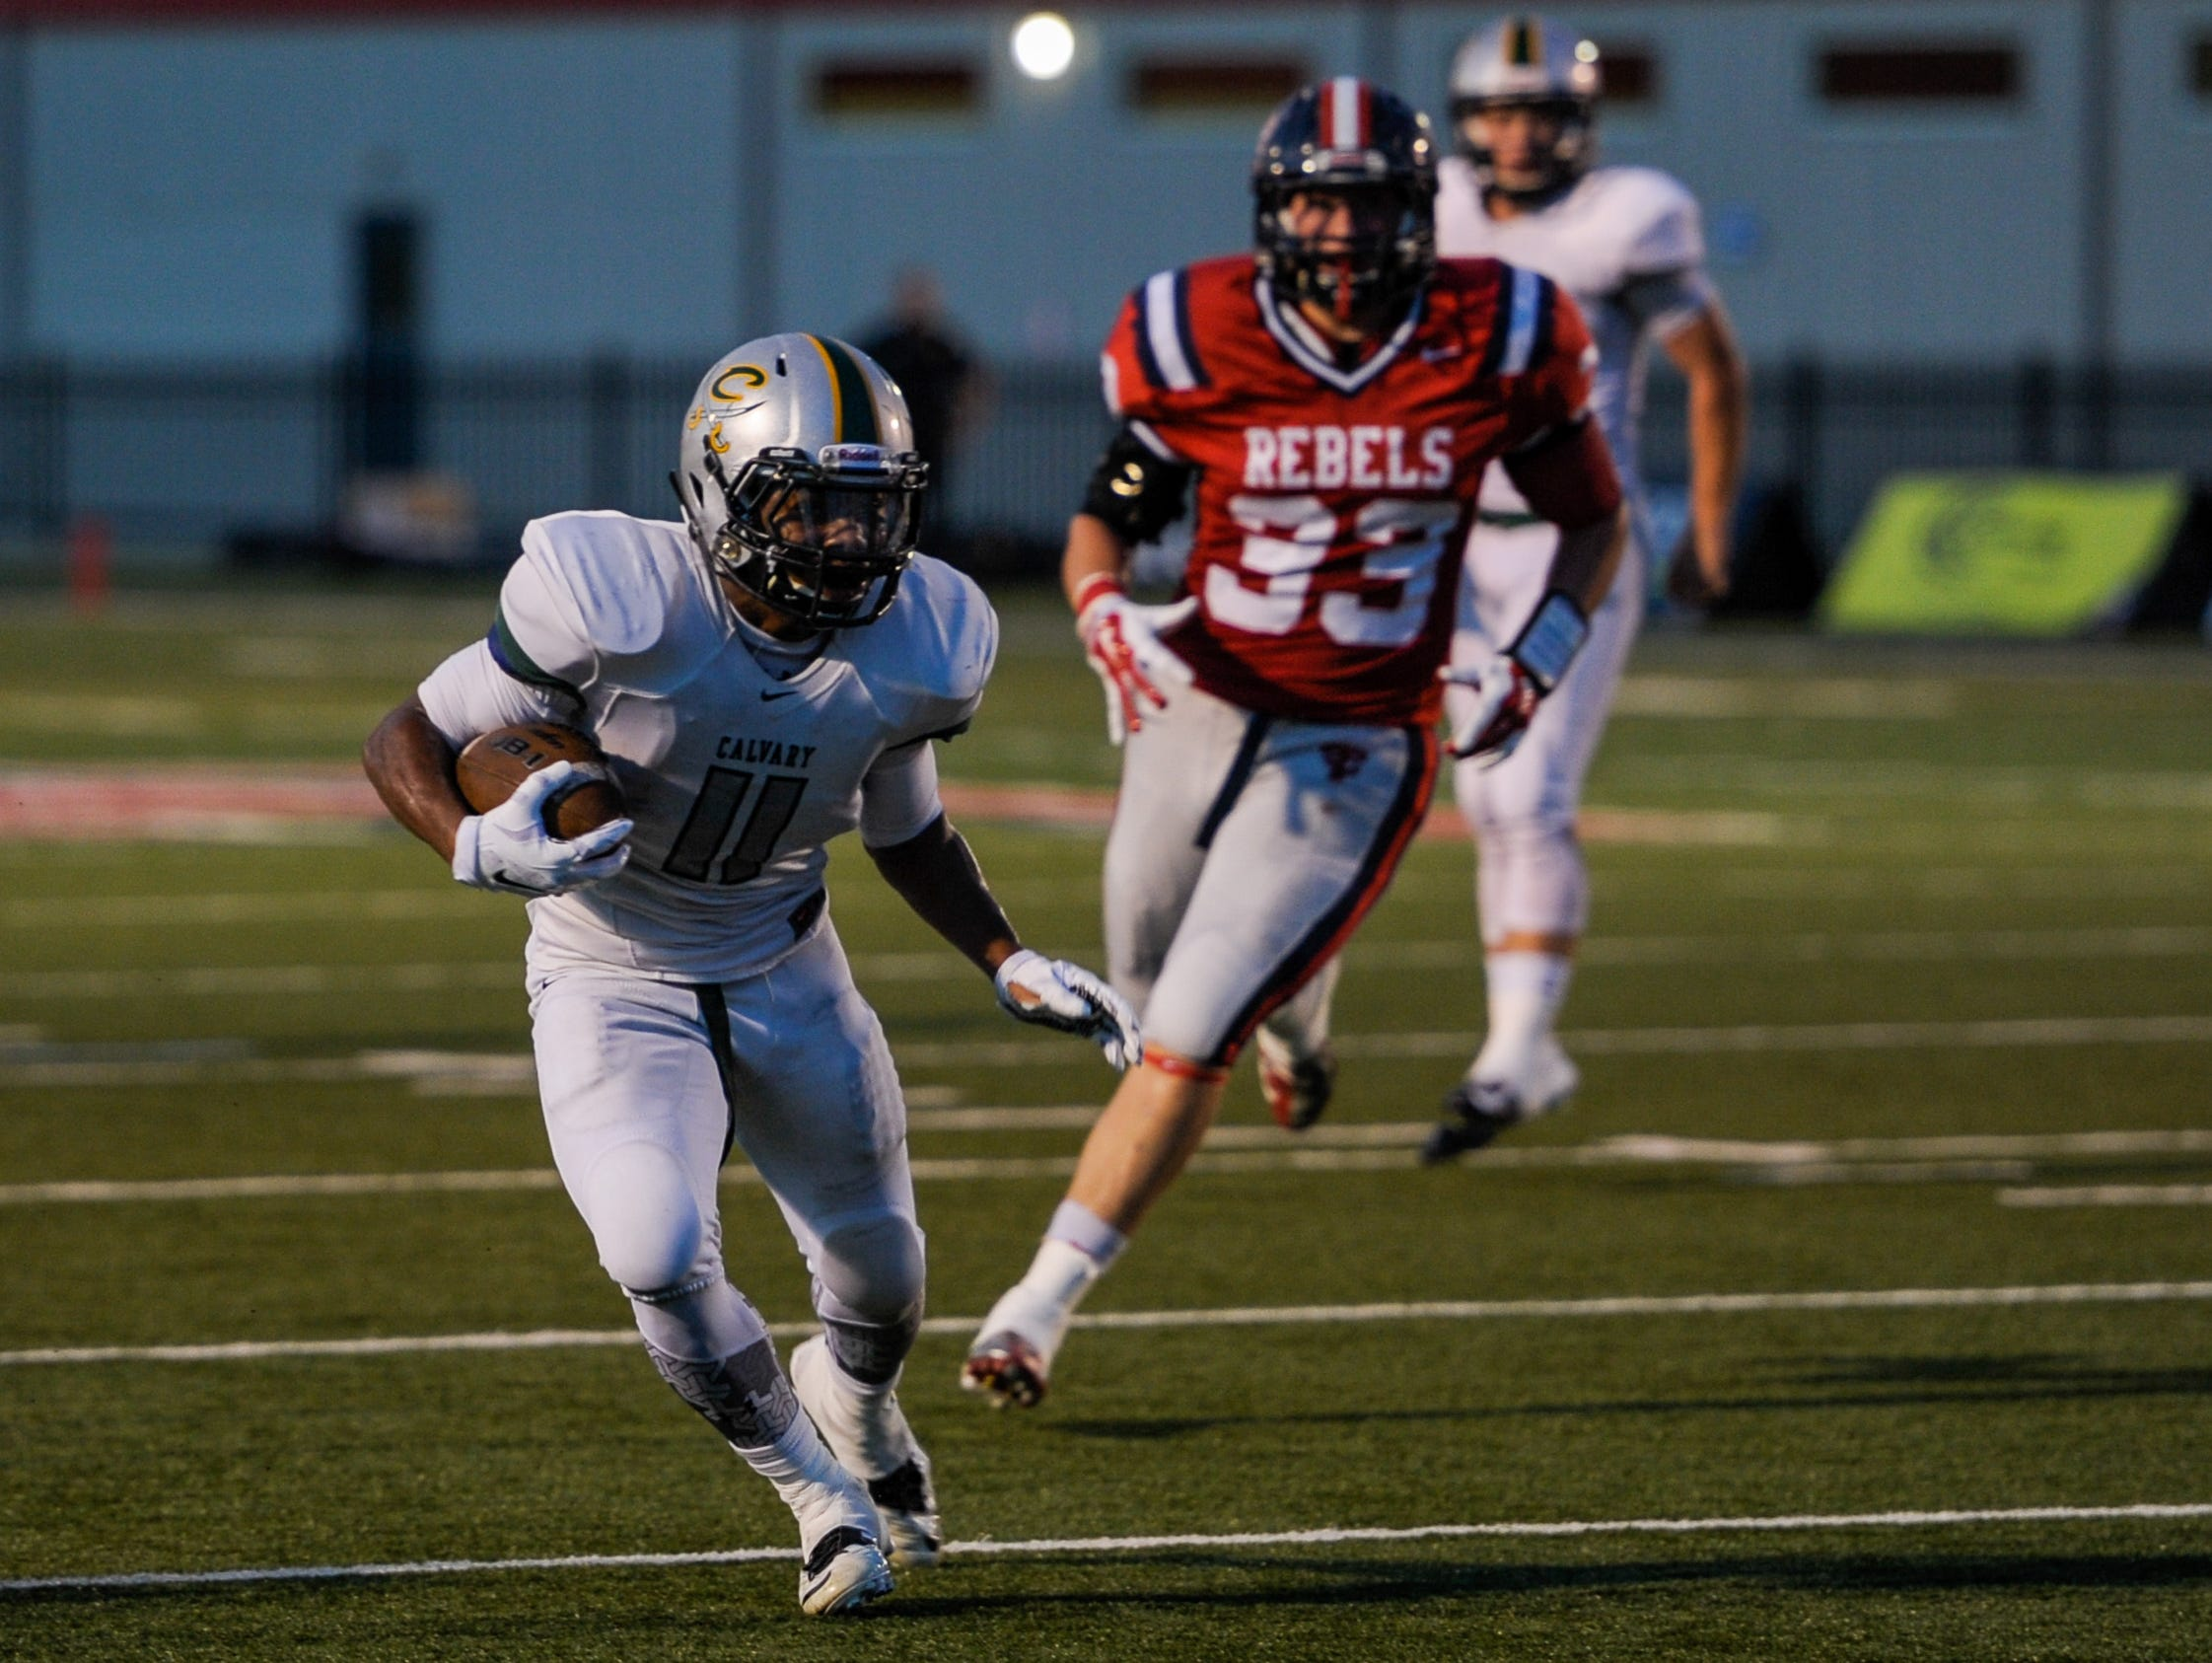 Calvary Baptist receiver Kyle Jones (11) runs with the football during the first half of an LHSAA football game at Teurlings Catholic High School in Lafayette, La., Friday, Sept. 4, 2015.